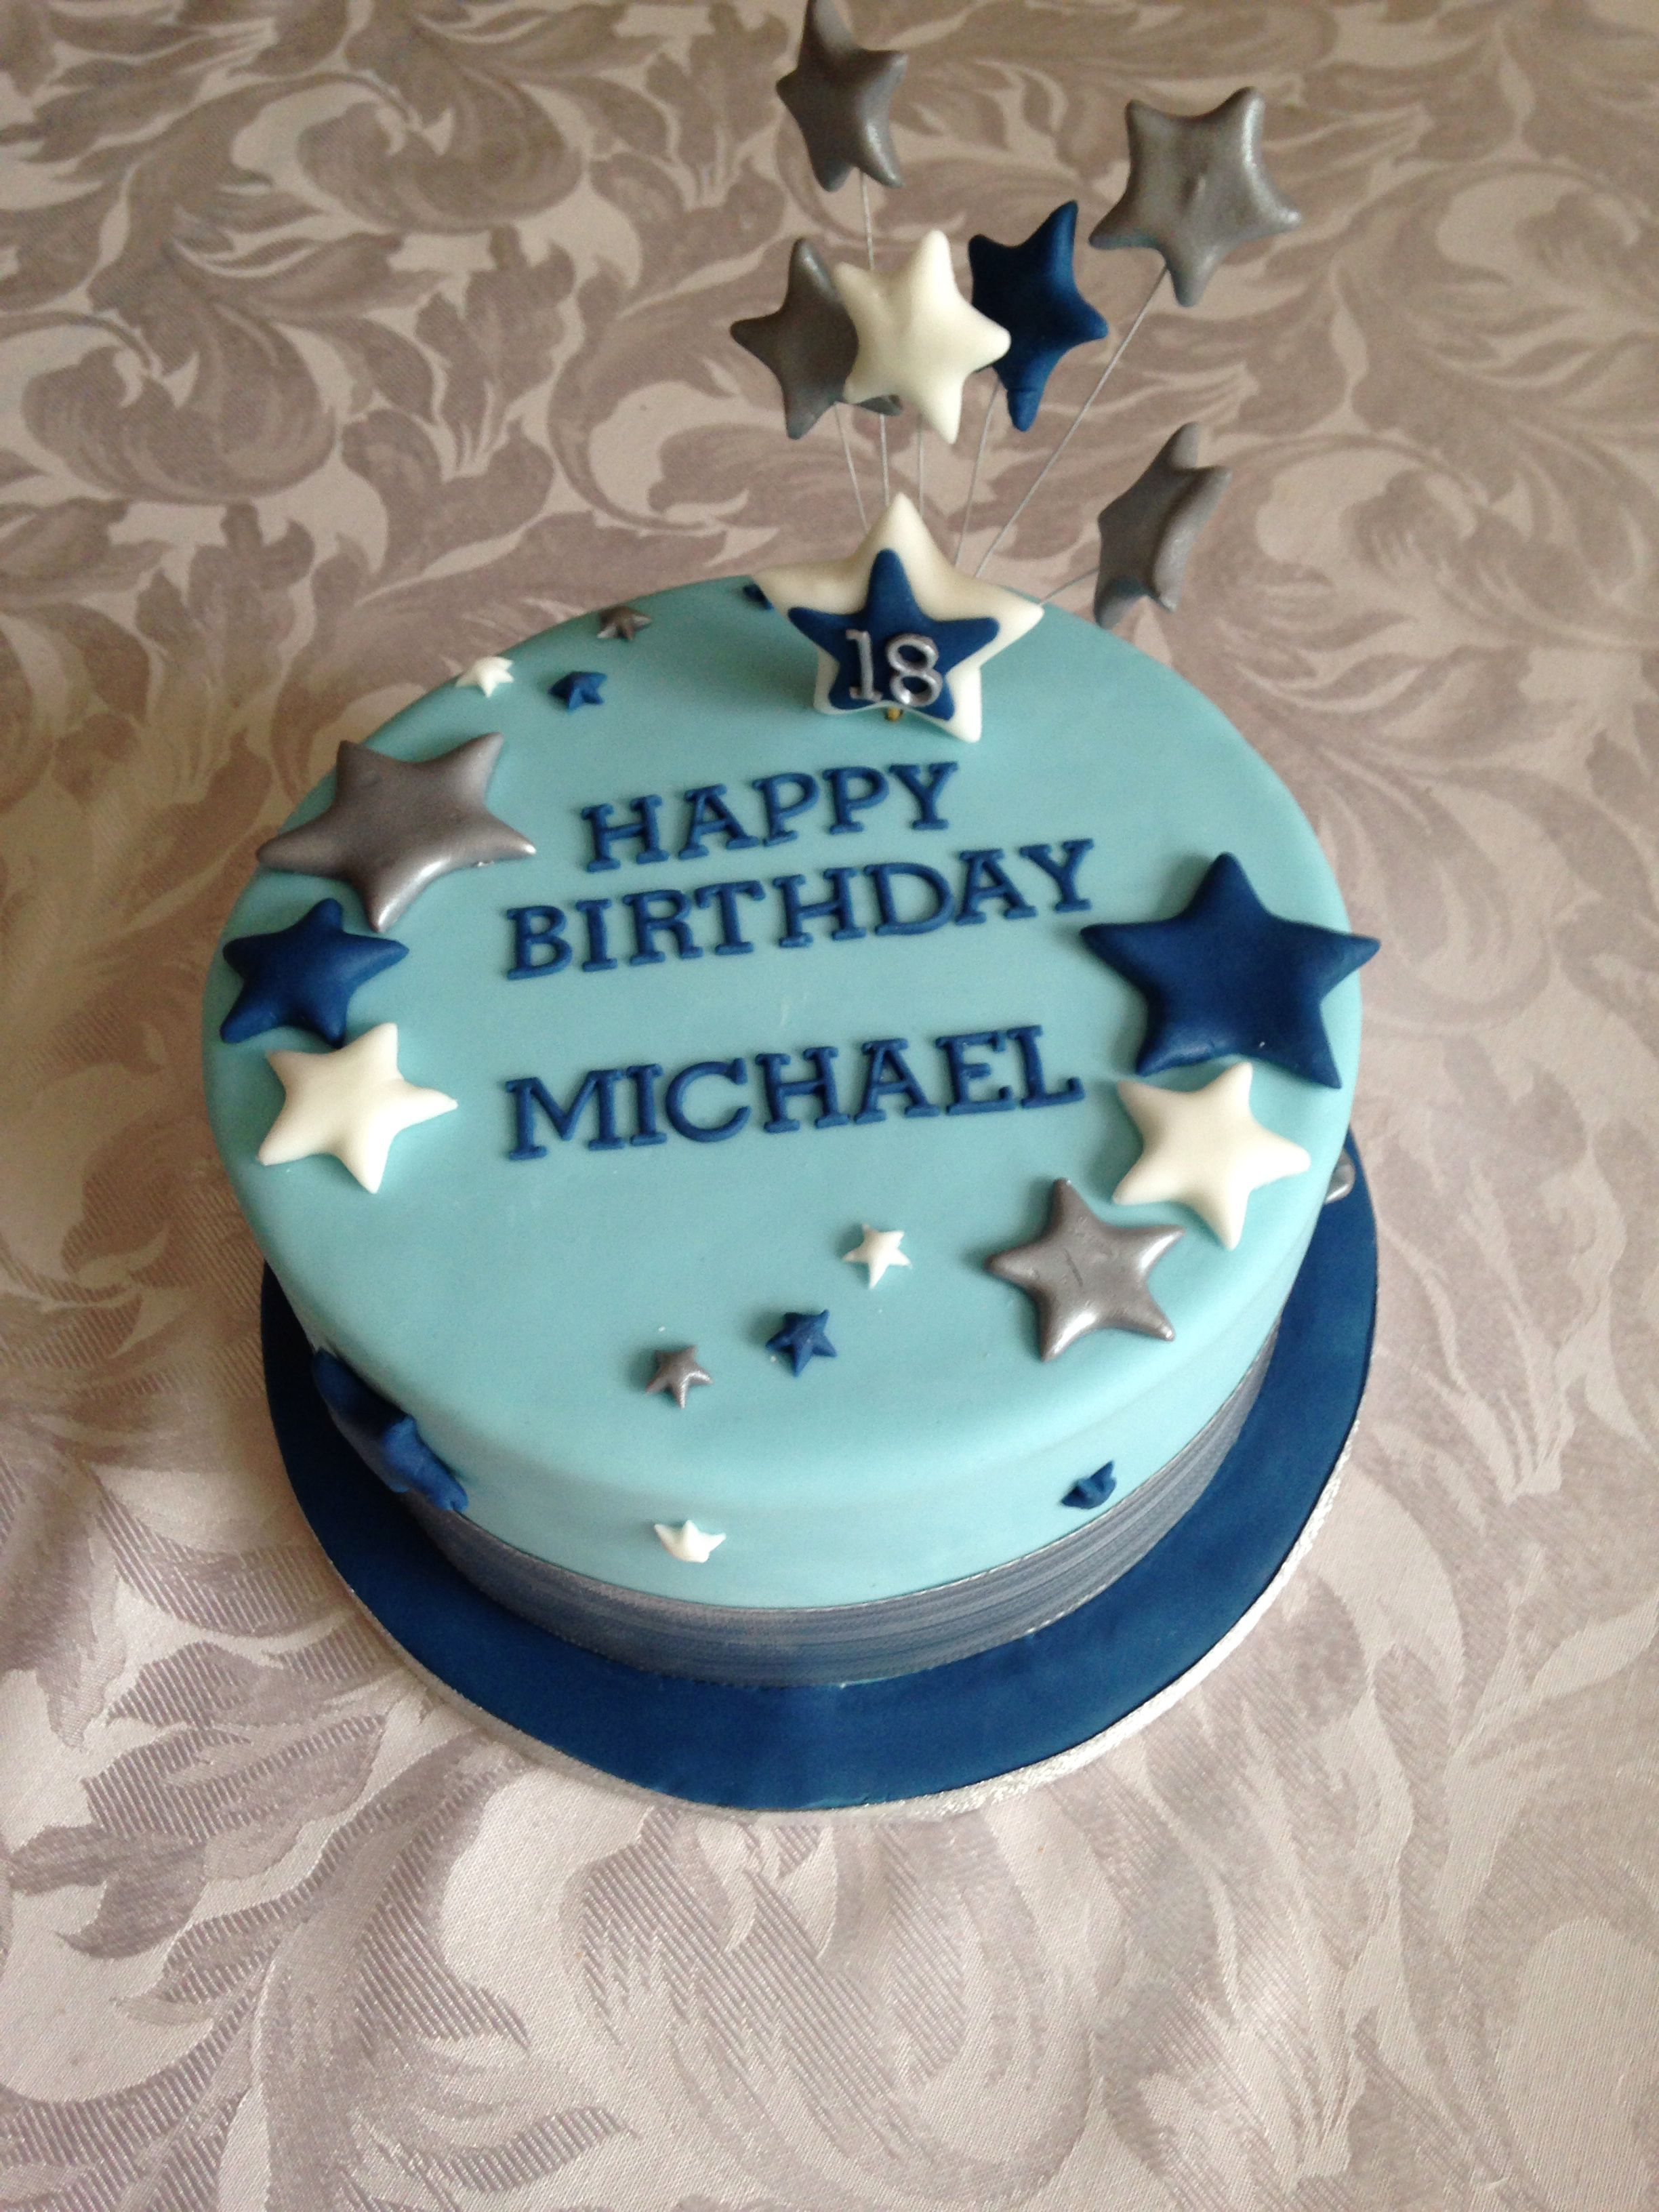 Birthday Cake Designs For Adults Simple 18th Birthday Cake For A Boy Prestons 18th Birthday Party